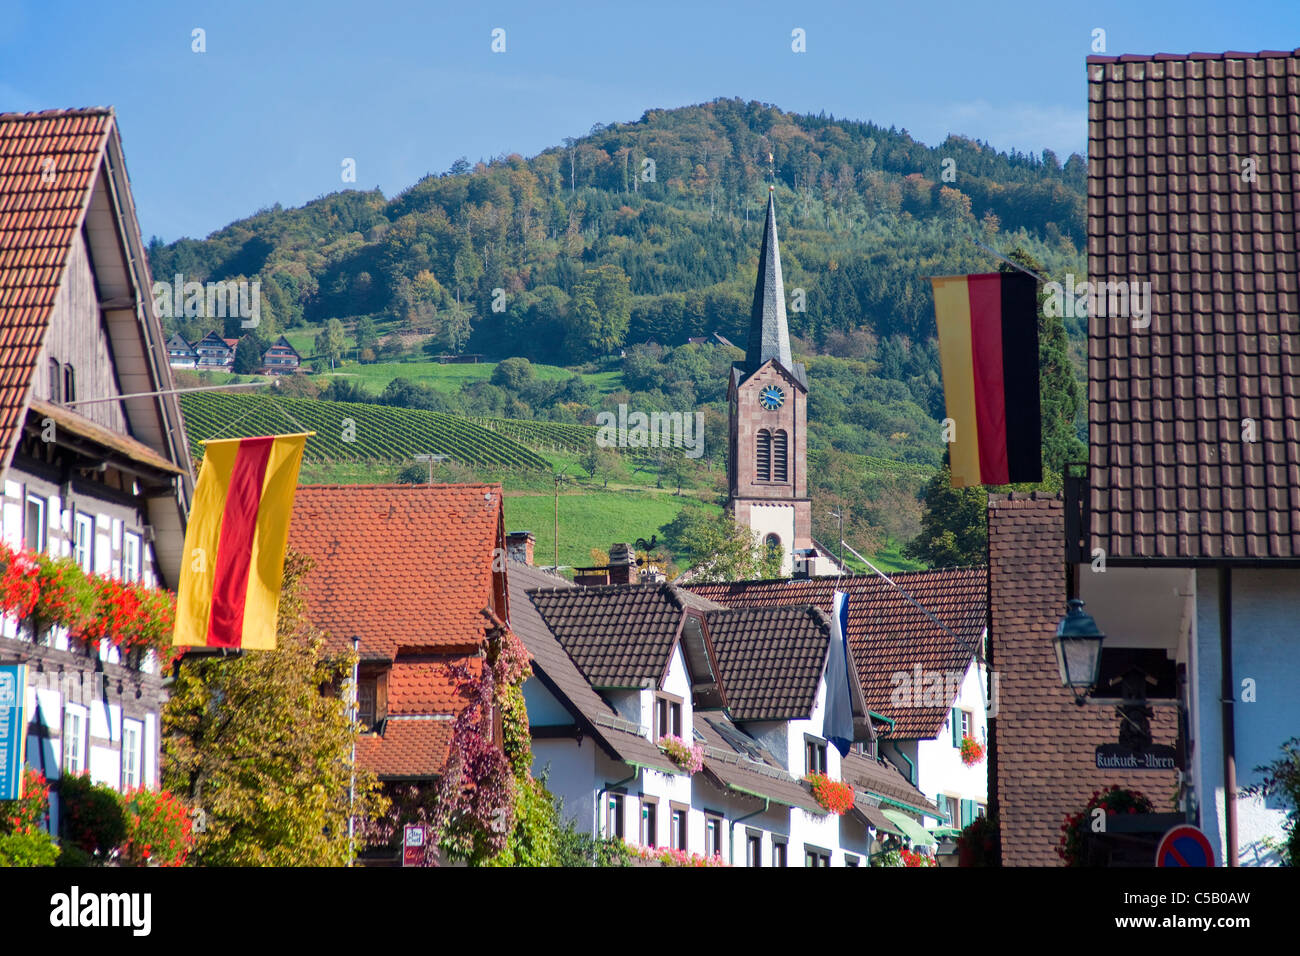 Dorfansicht Sasbachwalden, Schwarzwald, Village view, church in Sasbachwalden, Black Forest - Stock Image